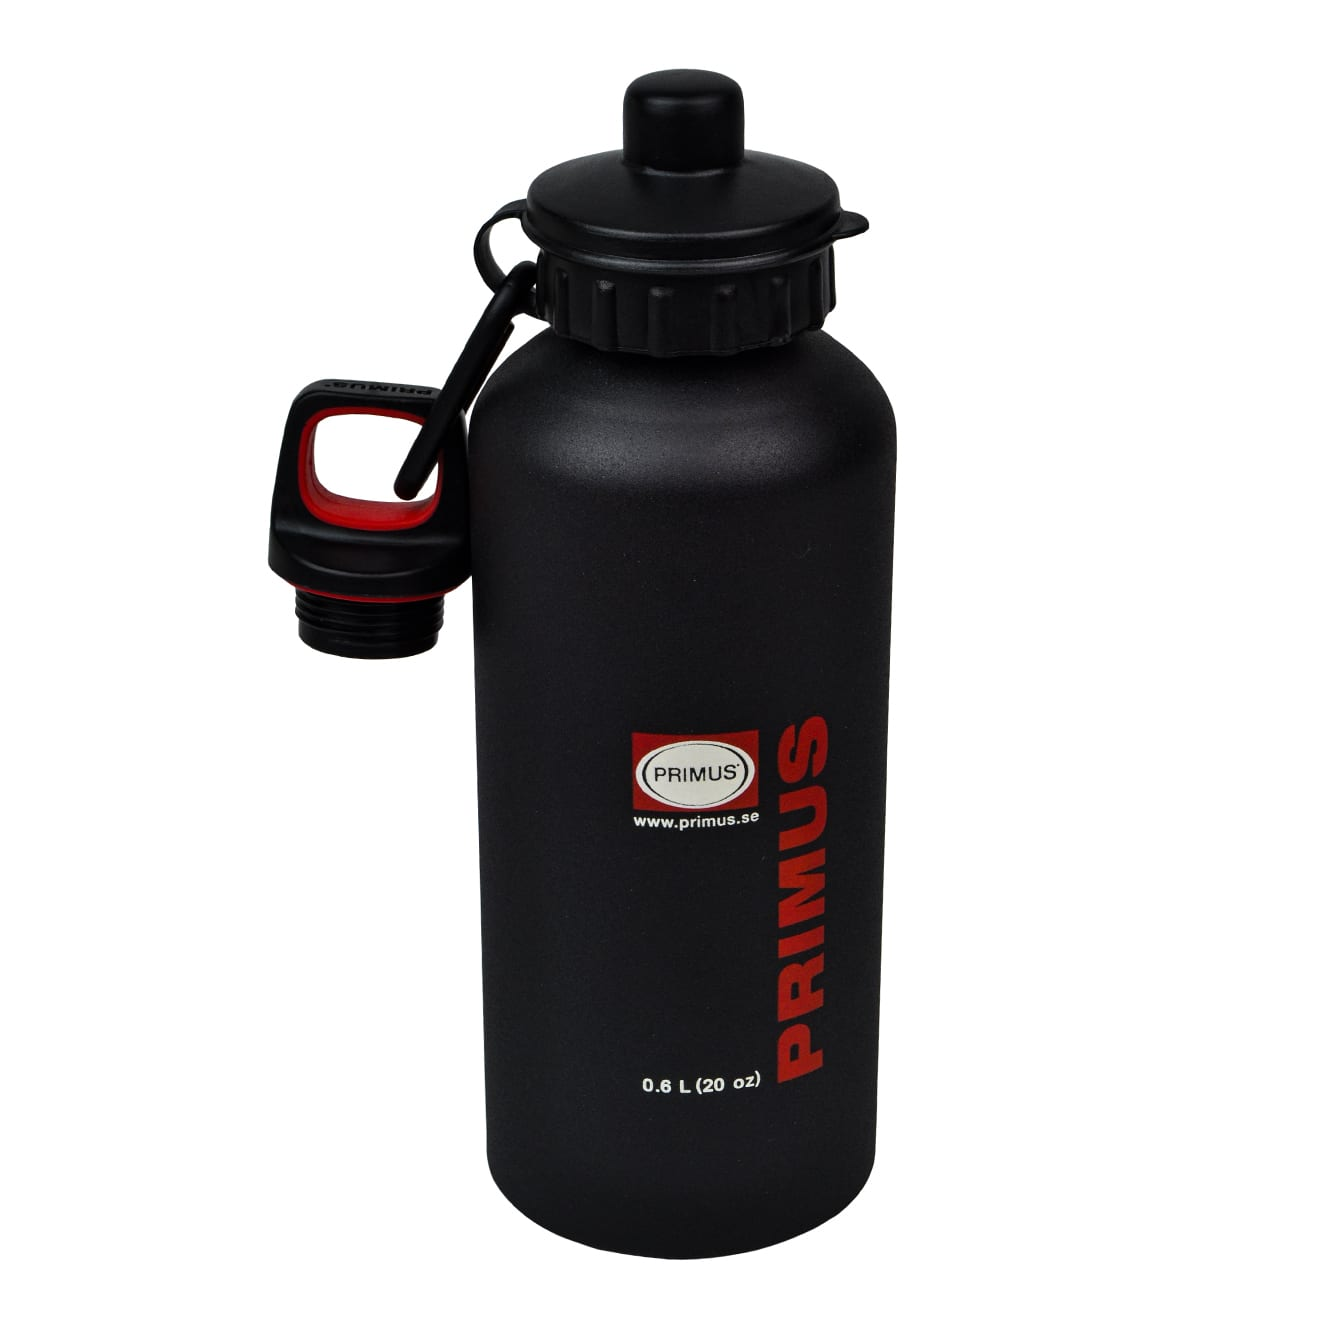 Primus stainless steel drinking bottle 0.6L black